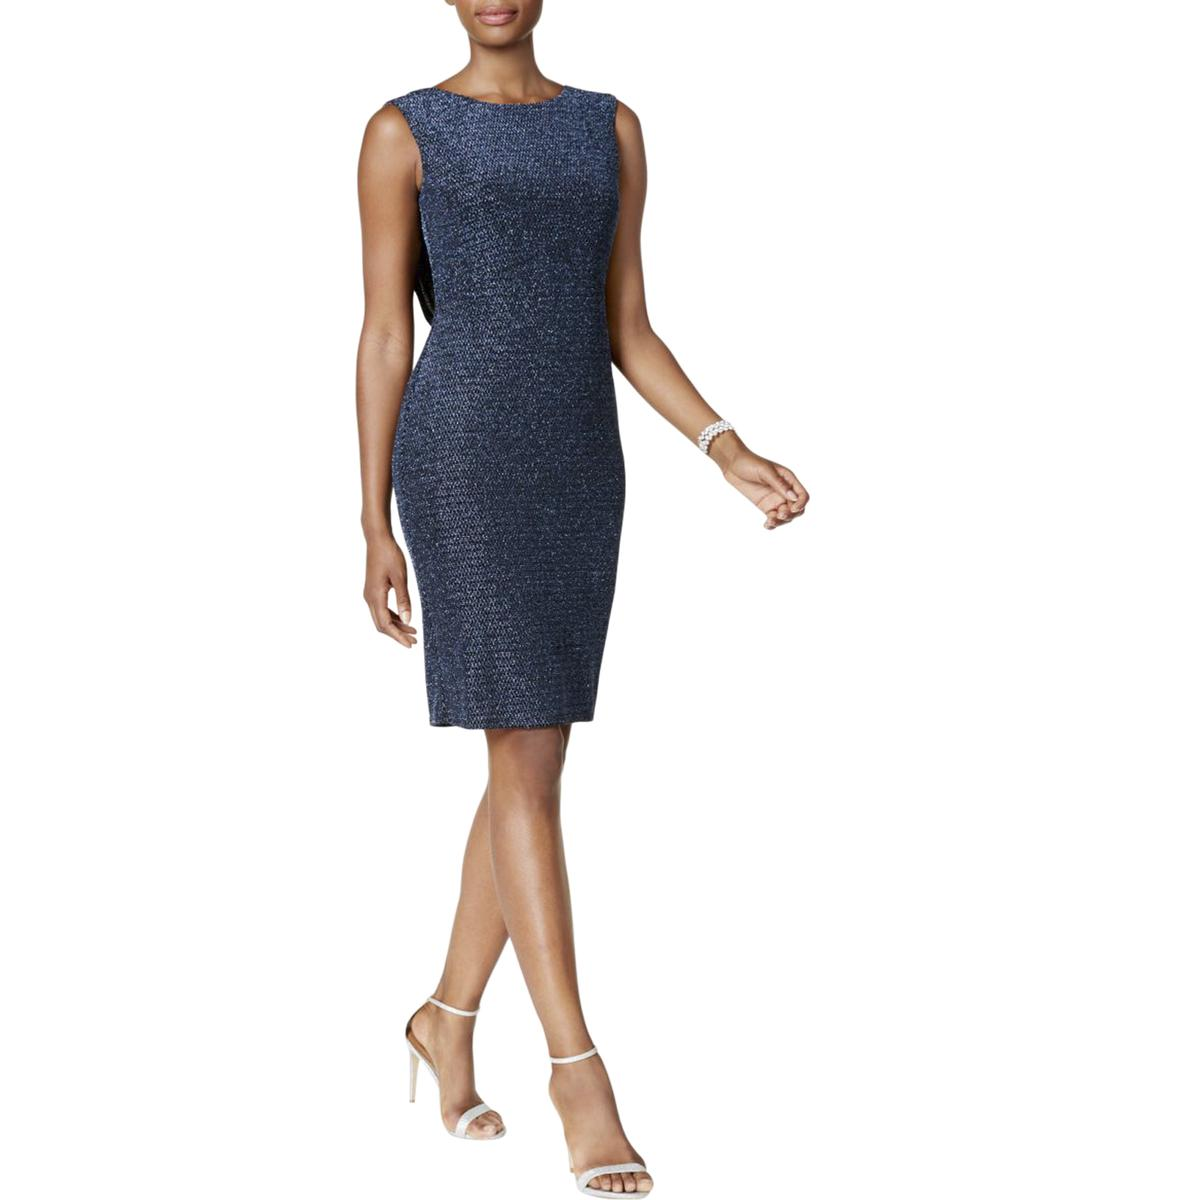 65985ac2918f0 Jessica Howard Womens Blue Metallic Sleeveless Cocktail Dress 12 ...